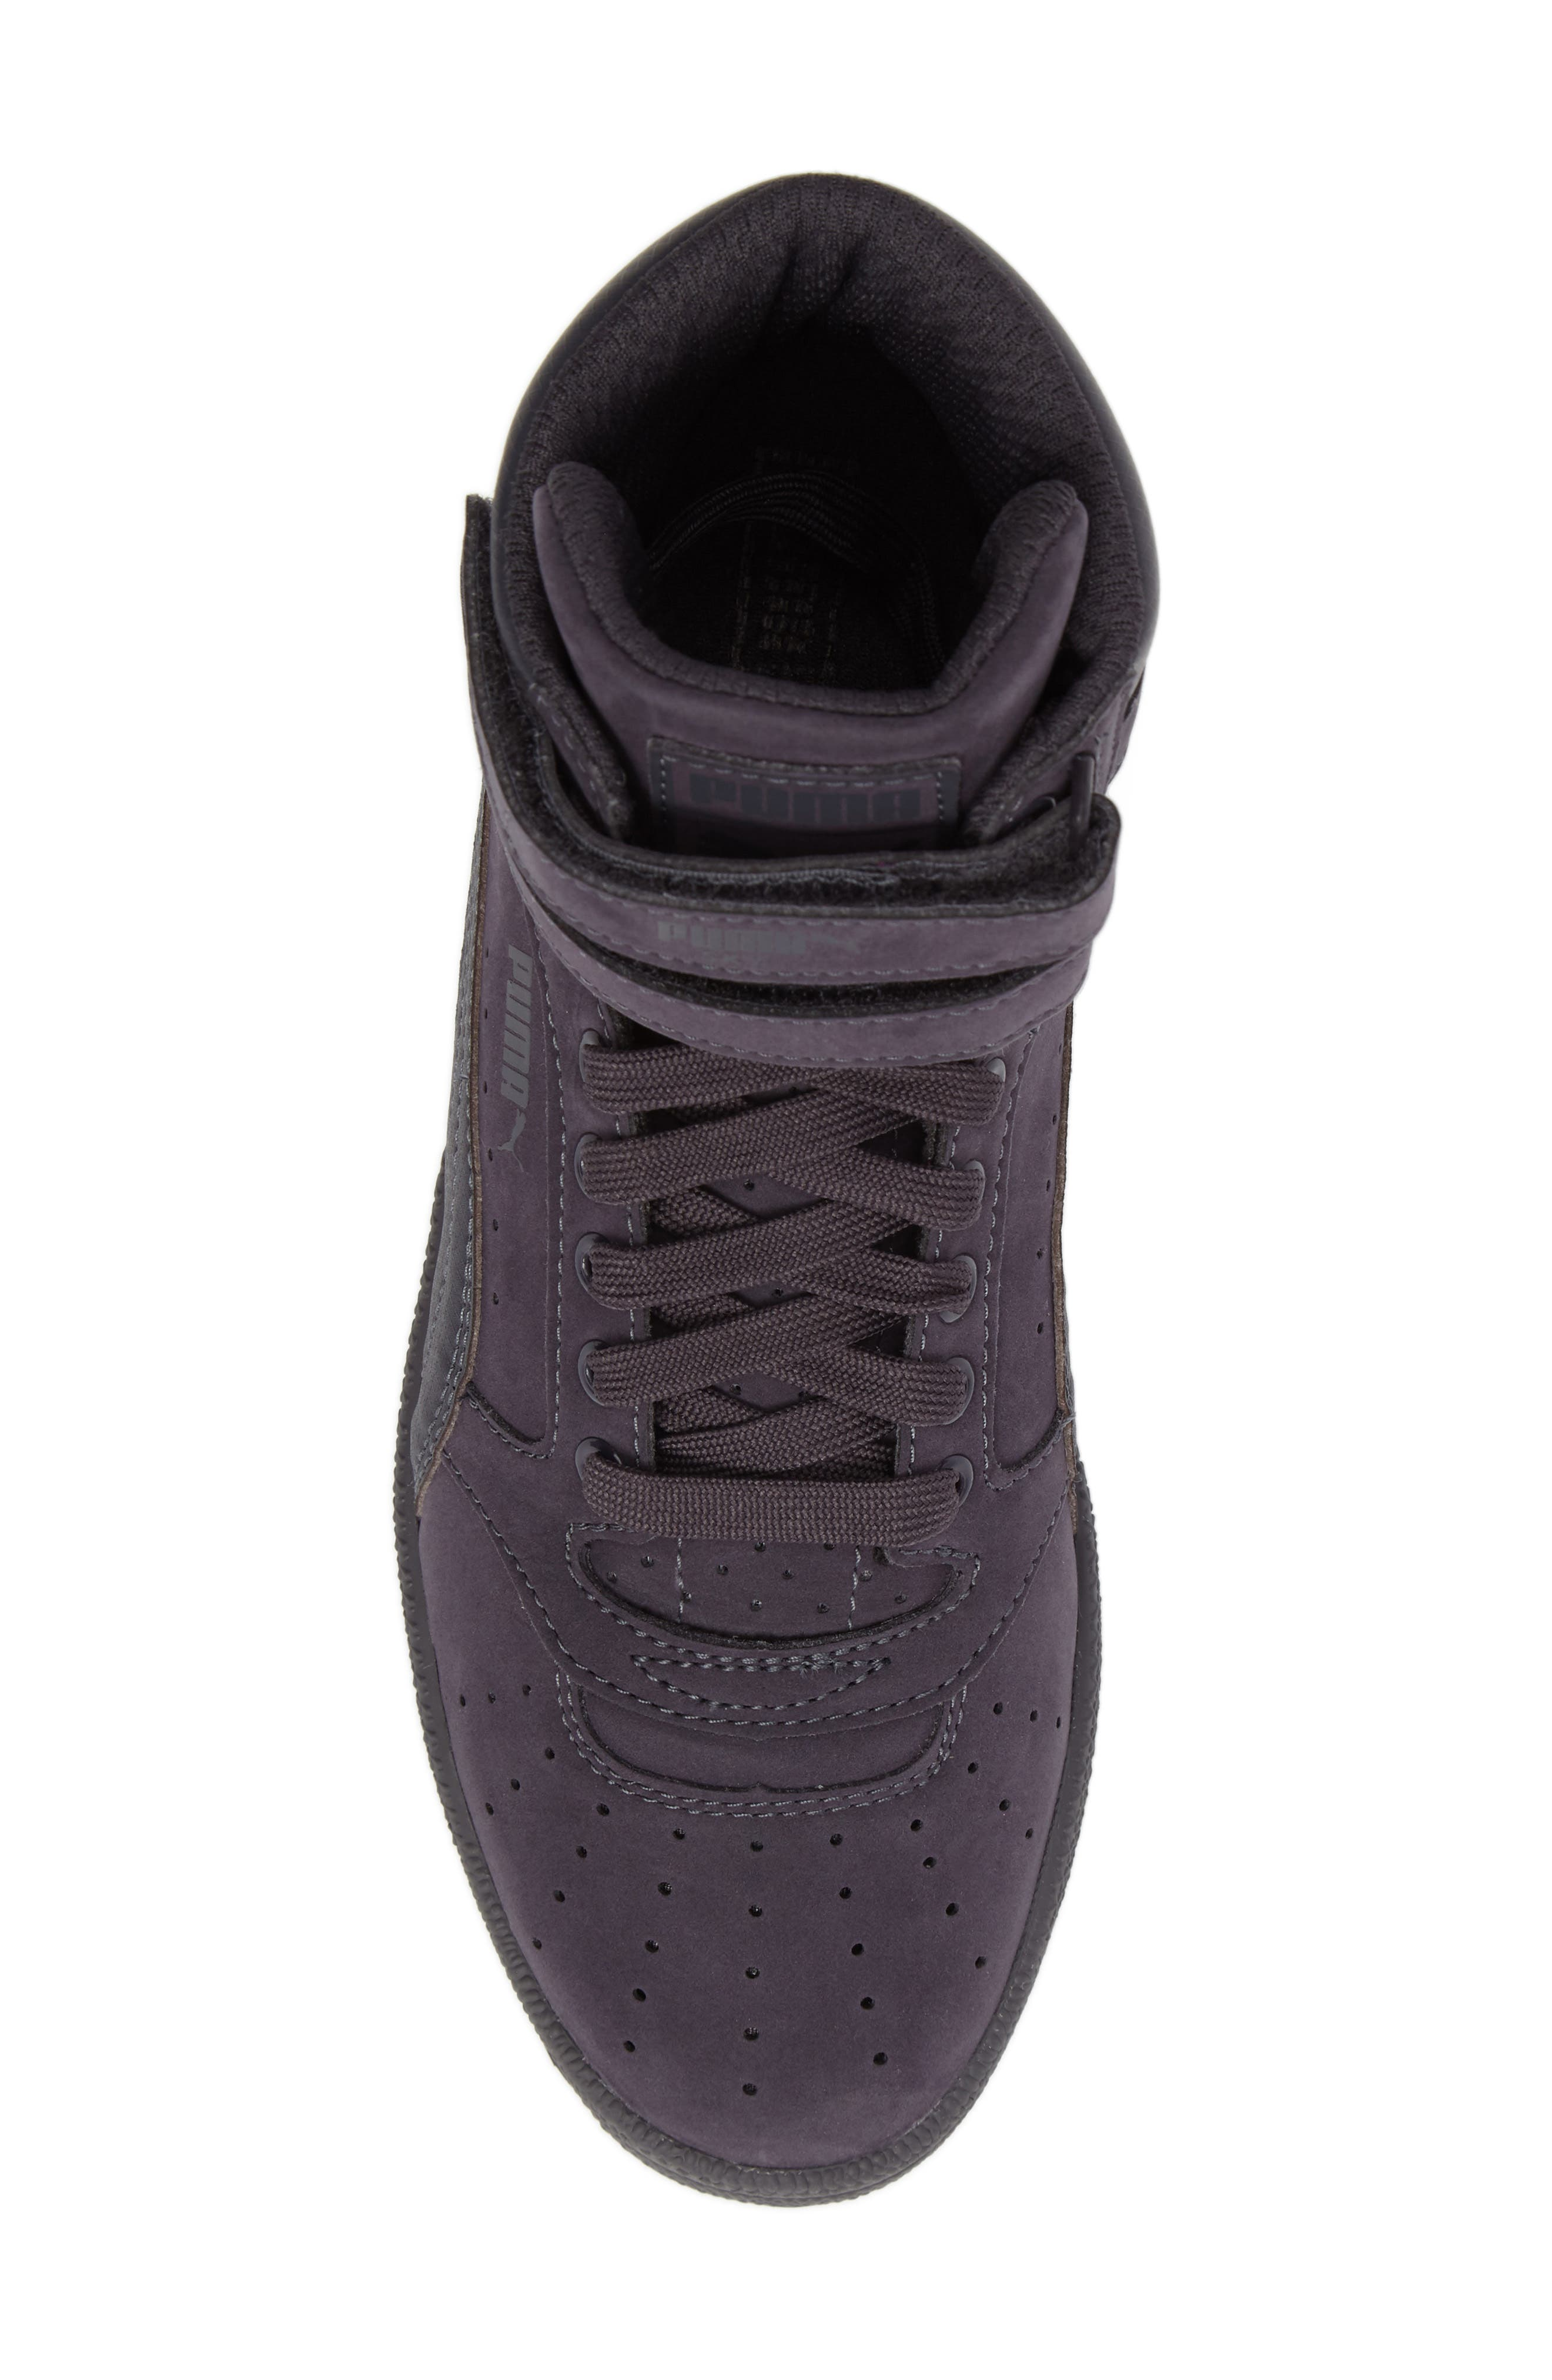 Ski II High Top Sneaker,                             Alternate thumbnail 9, color,